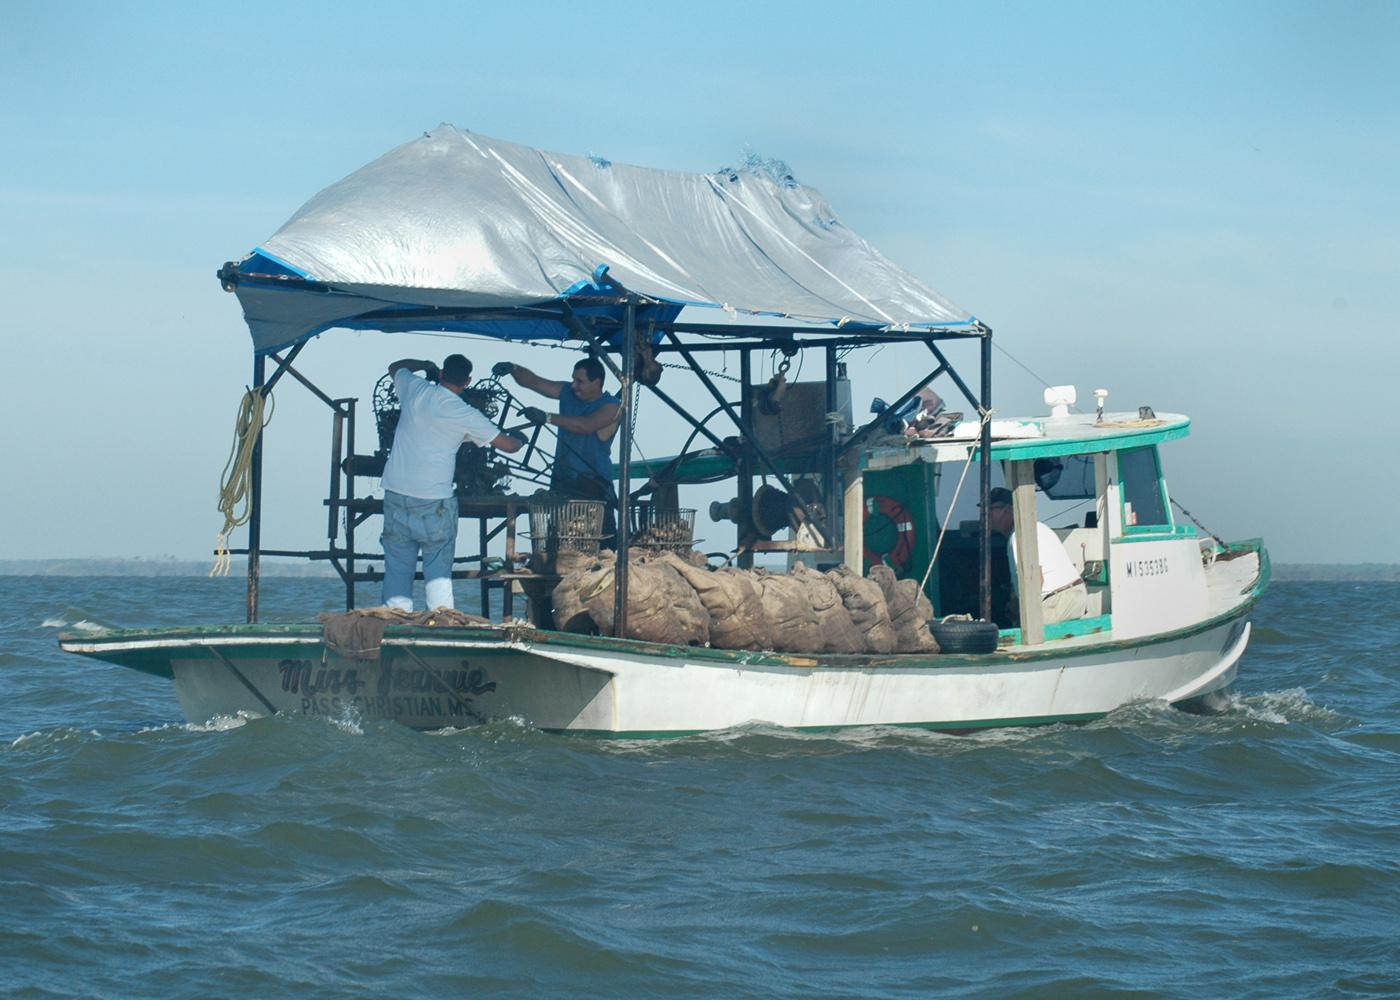 The Miss Jeannie out of Pass Christian was one of the boats harvesting oysters on the St. Joe Reef near Bayou Caddy in early October. (Photo by Bob Ratliff)